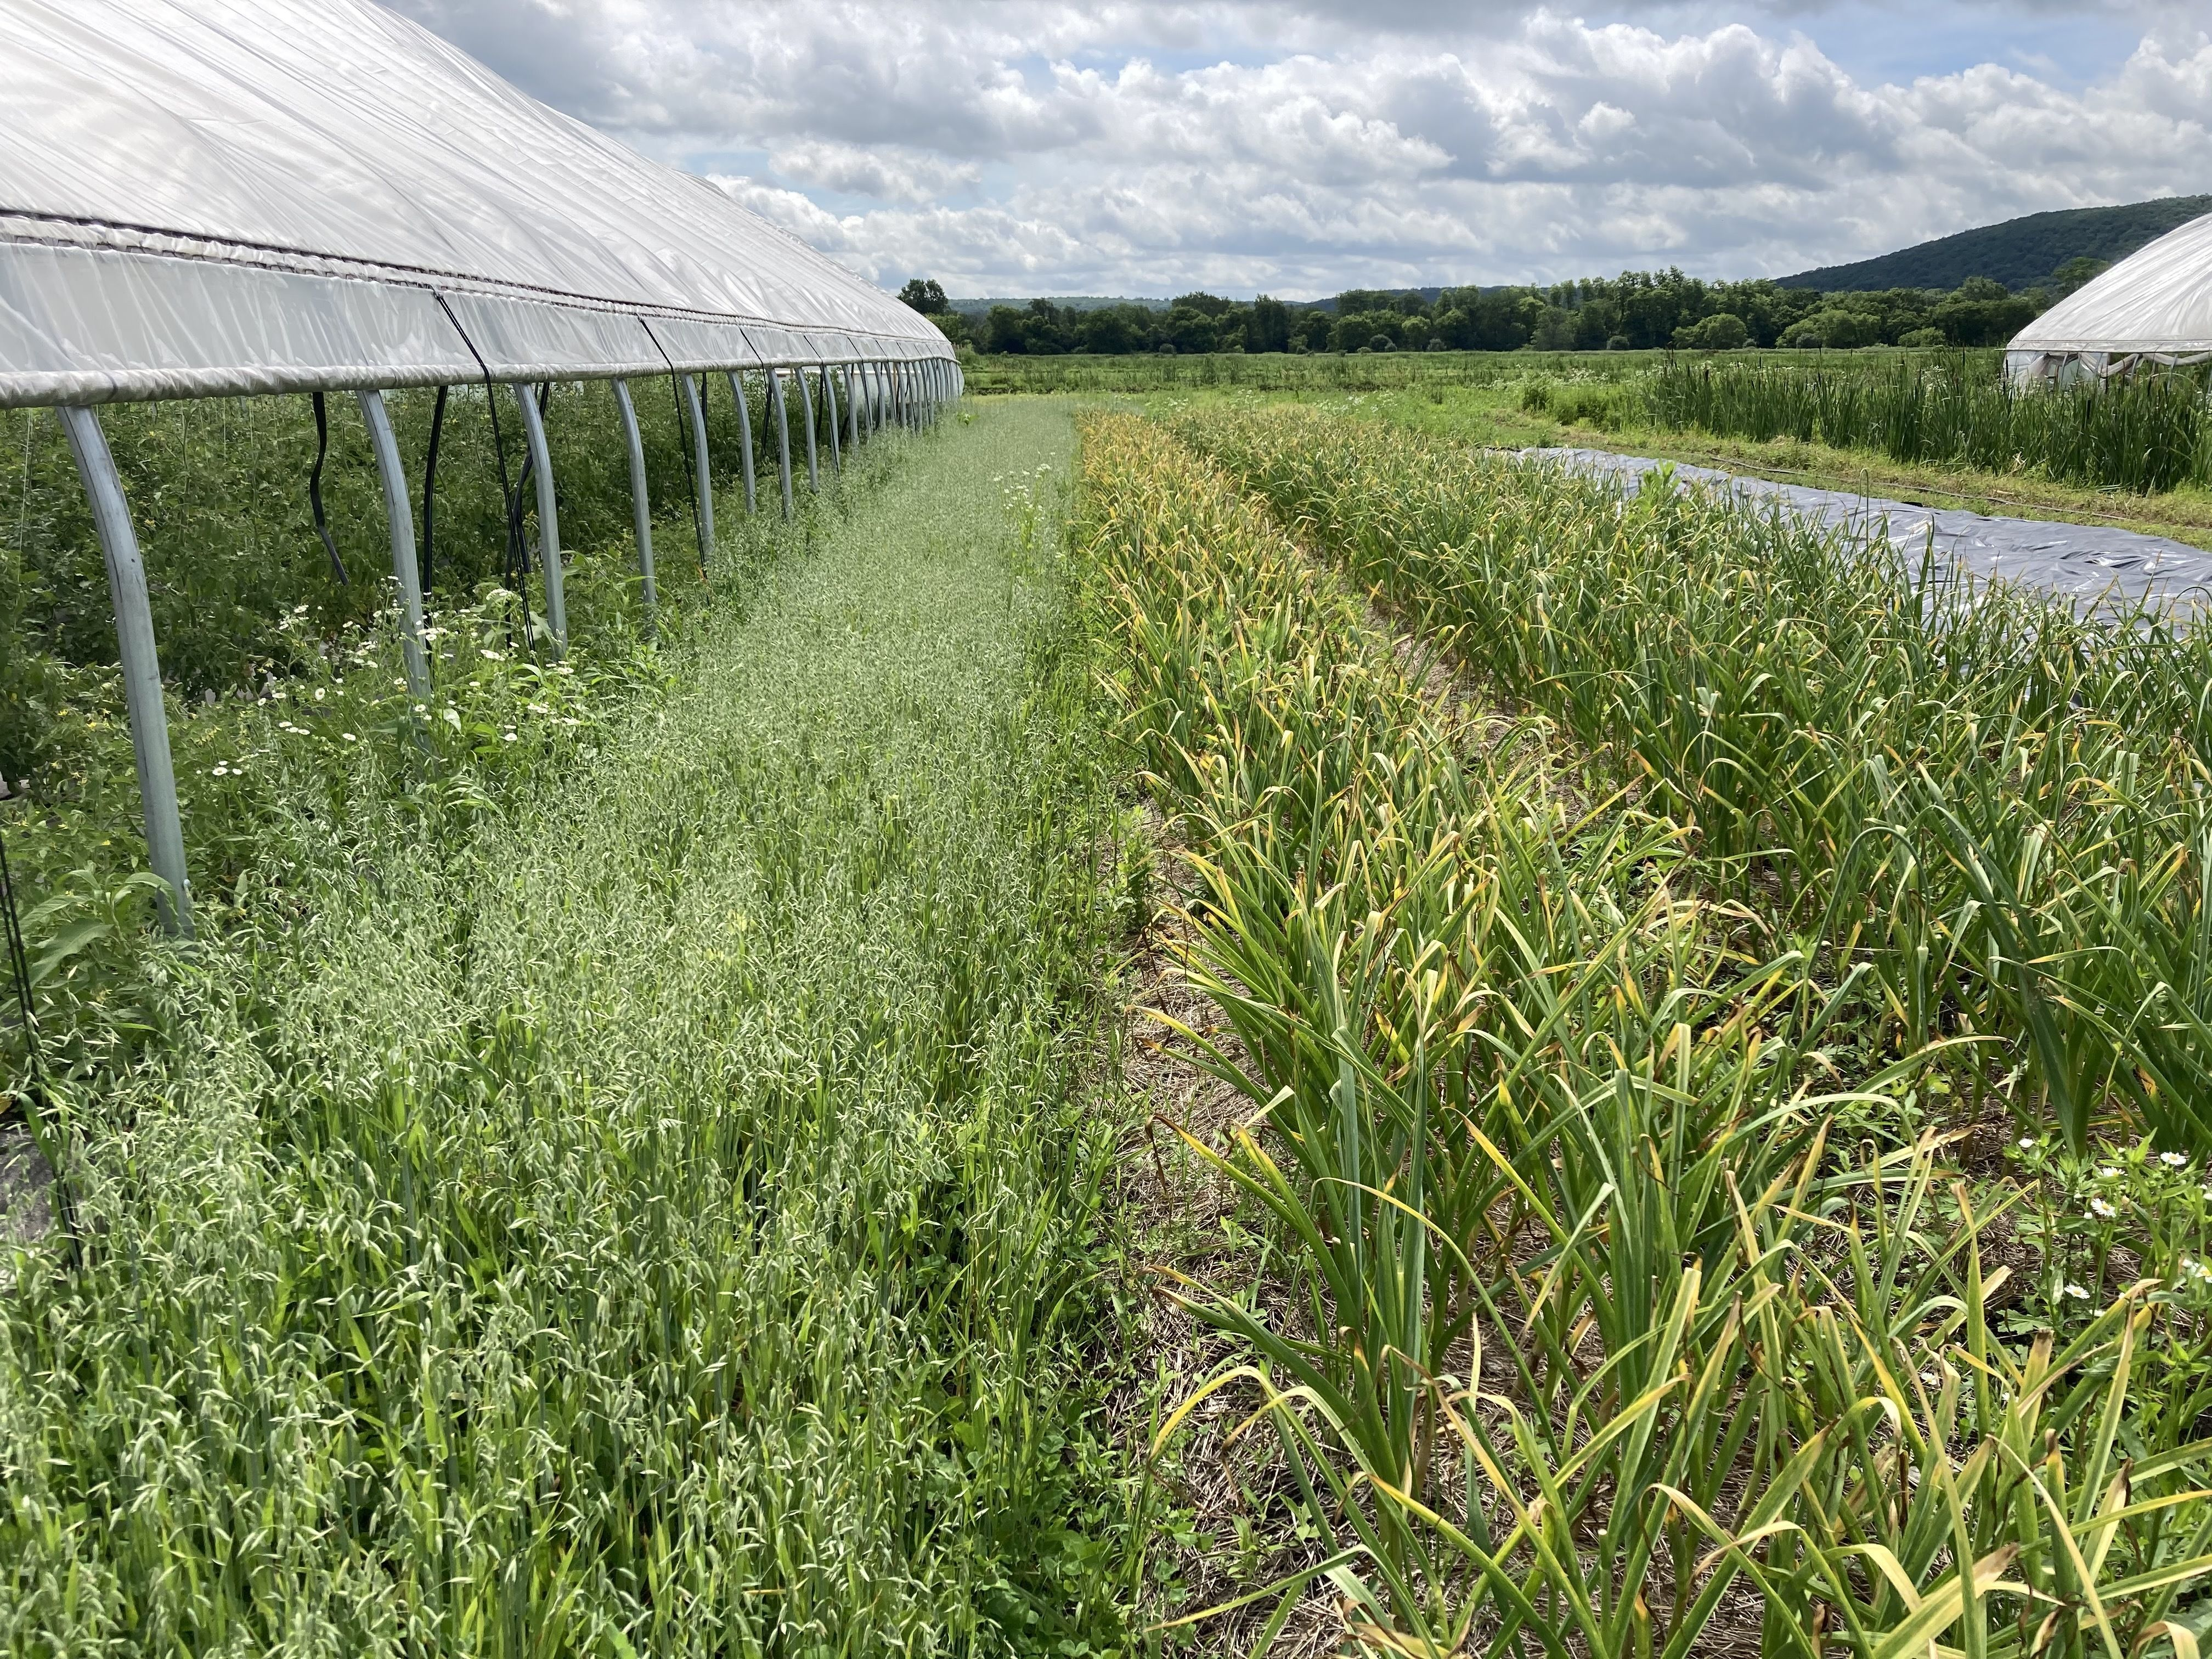 Rise and Root Farm, oats along the greenhouse periphery, for erosion control and harvesting for medicinals